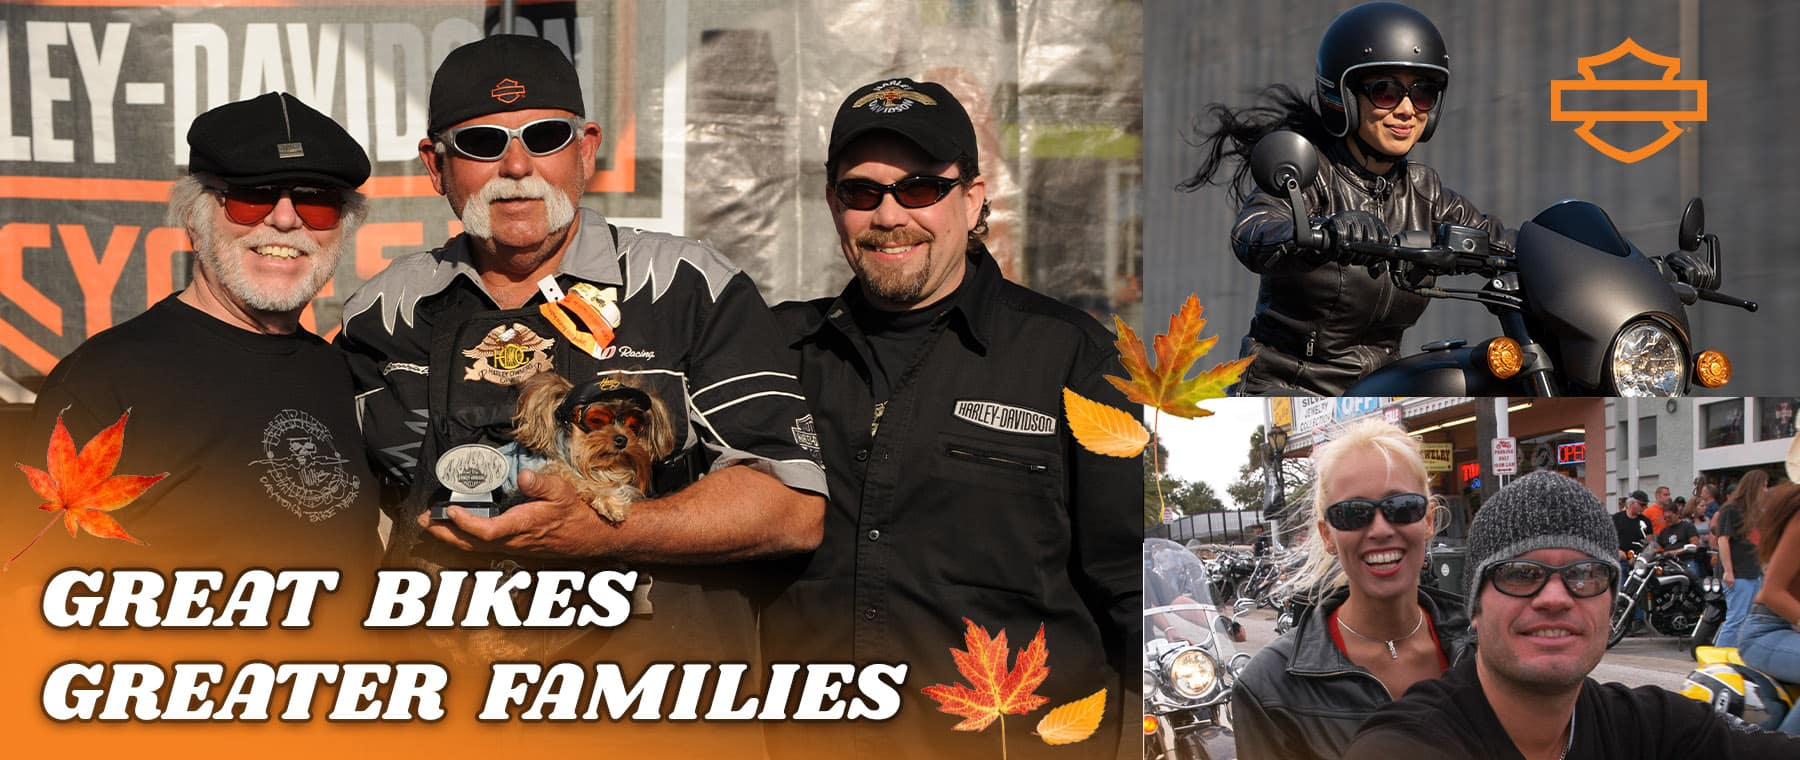 Harley Riders promoting great bikes, greater families